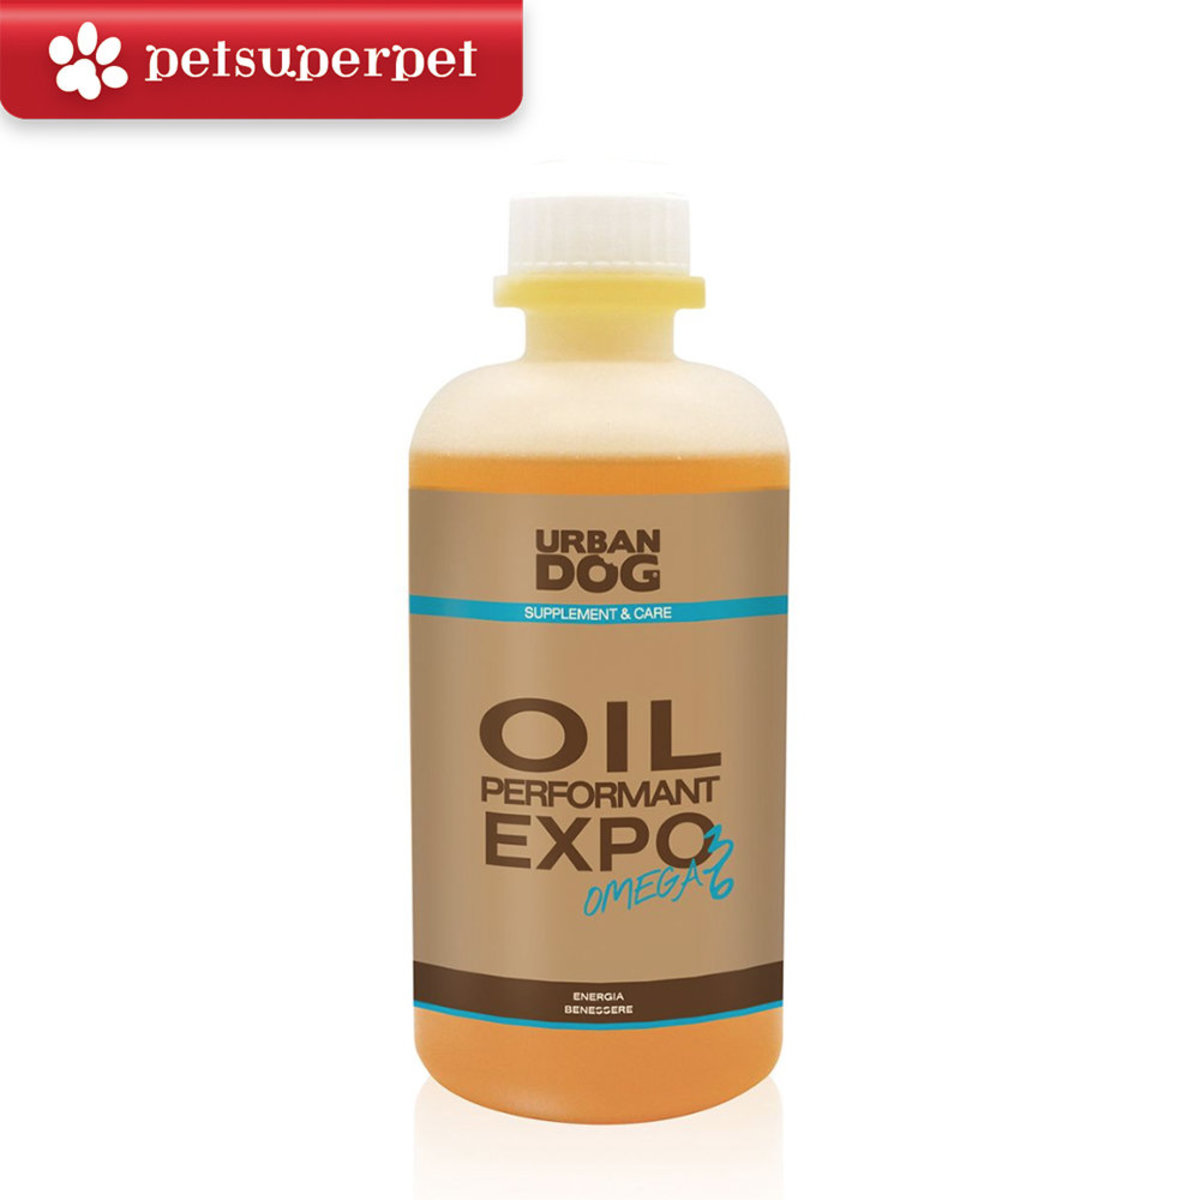 Italy Oil Performant Expo OMEGA 3 & 6 Nutritional Supplement for Dogs - 300ml